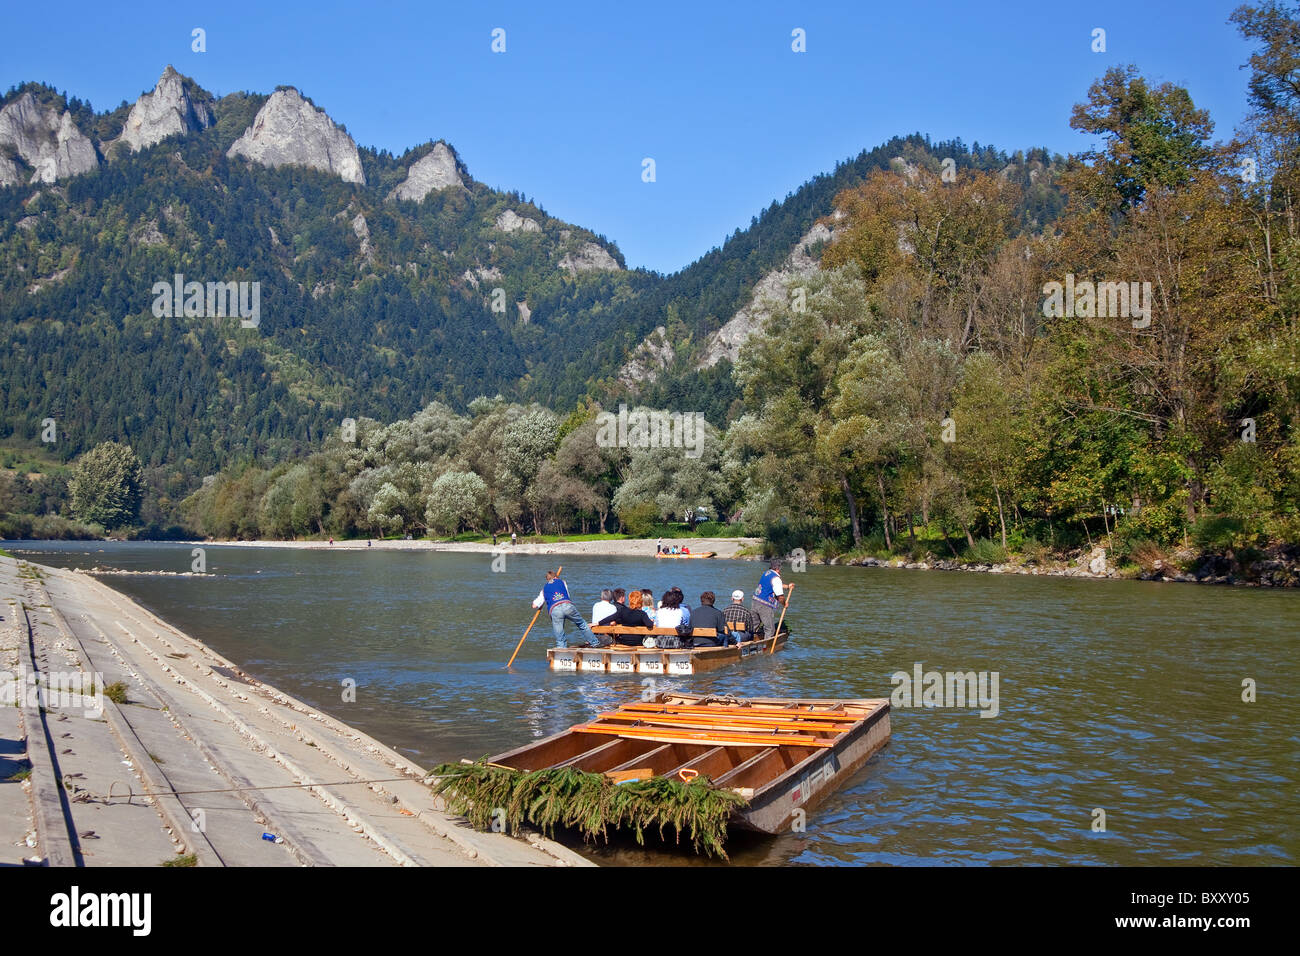 Rafting on Dunajec and Three Crowns in the Pieniny, Poland - Stock Image